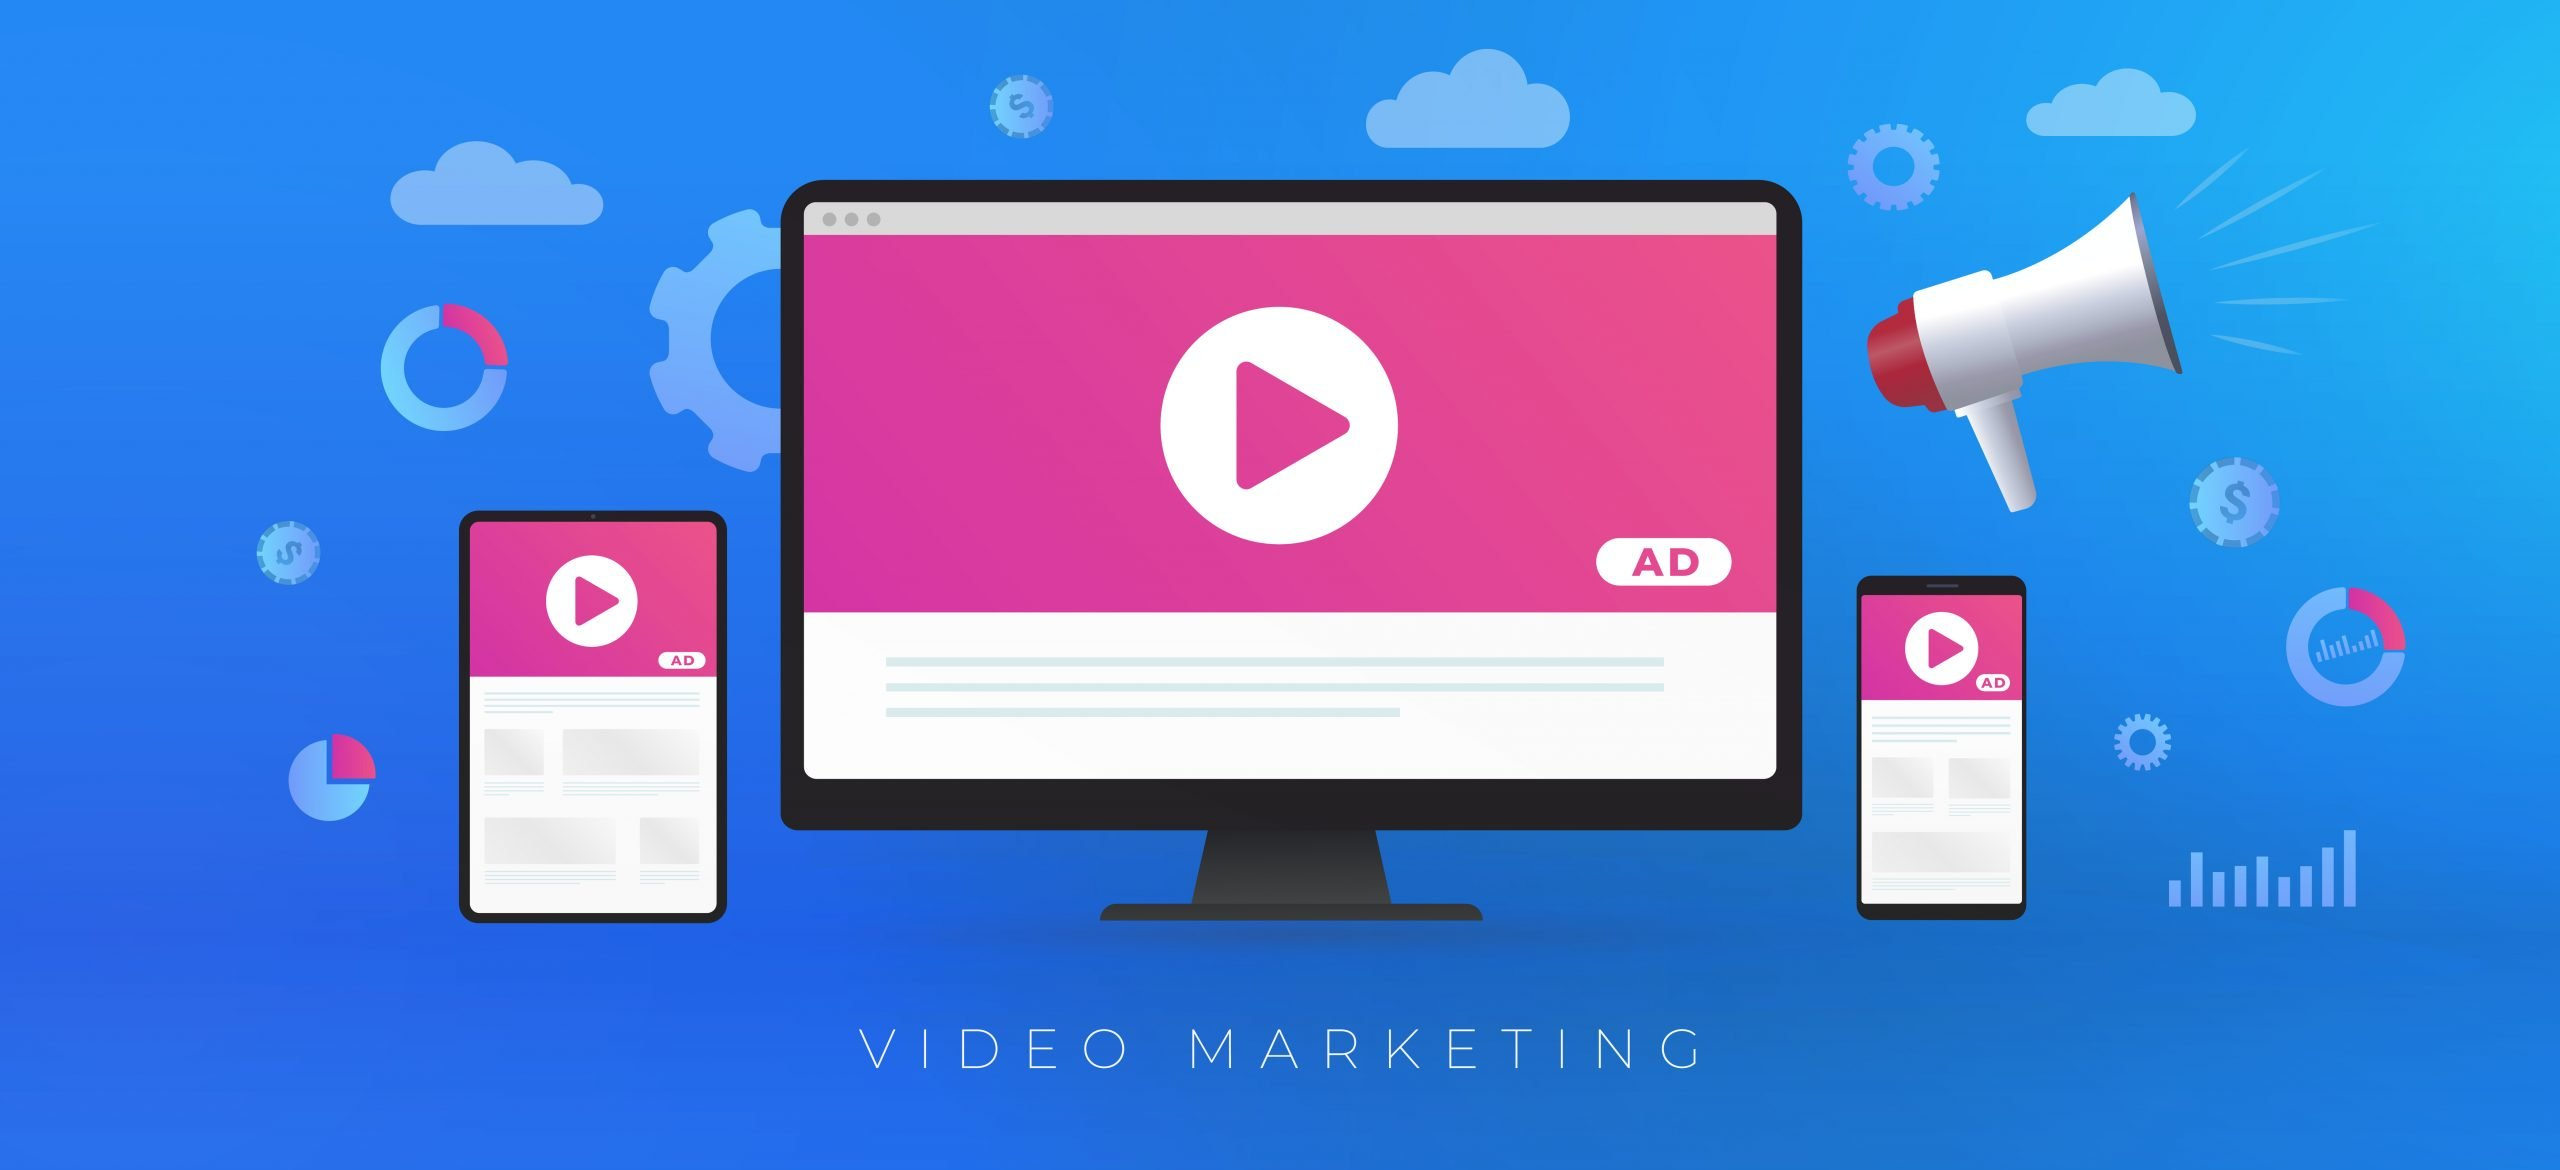 YouTube Video Marketing Ads